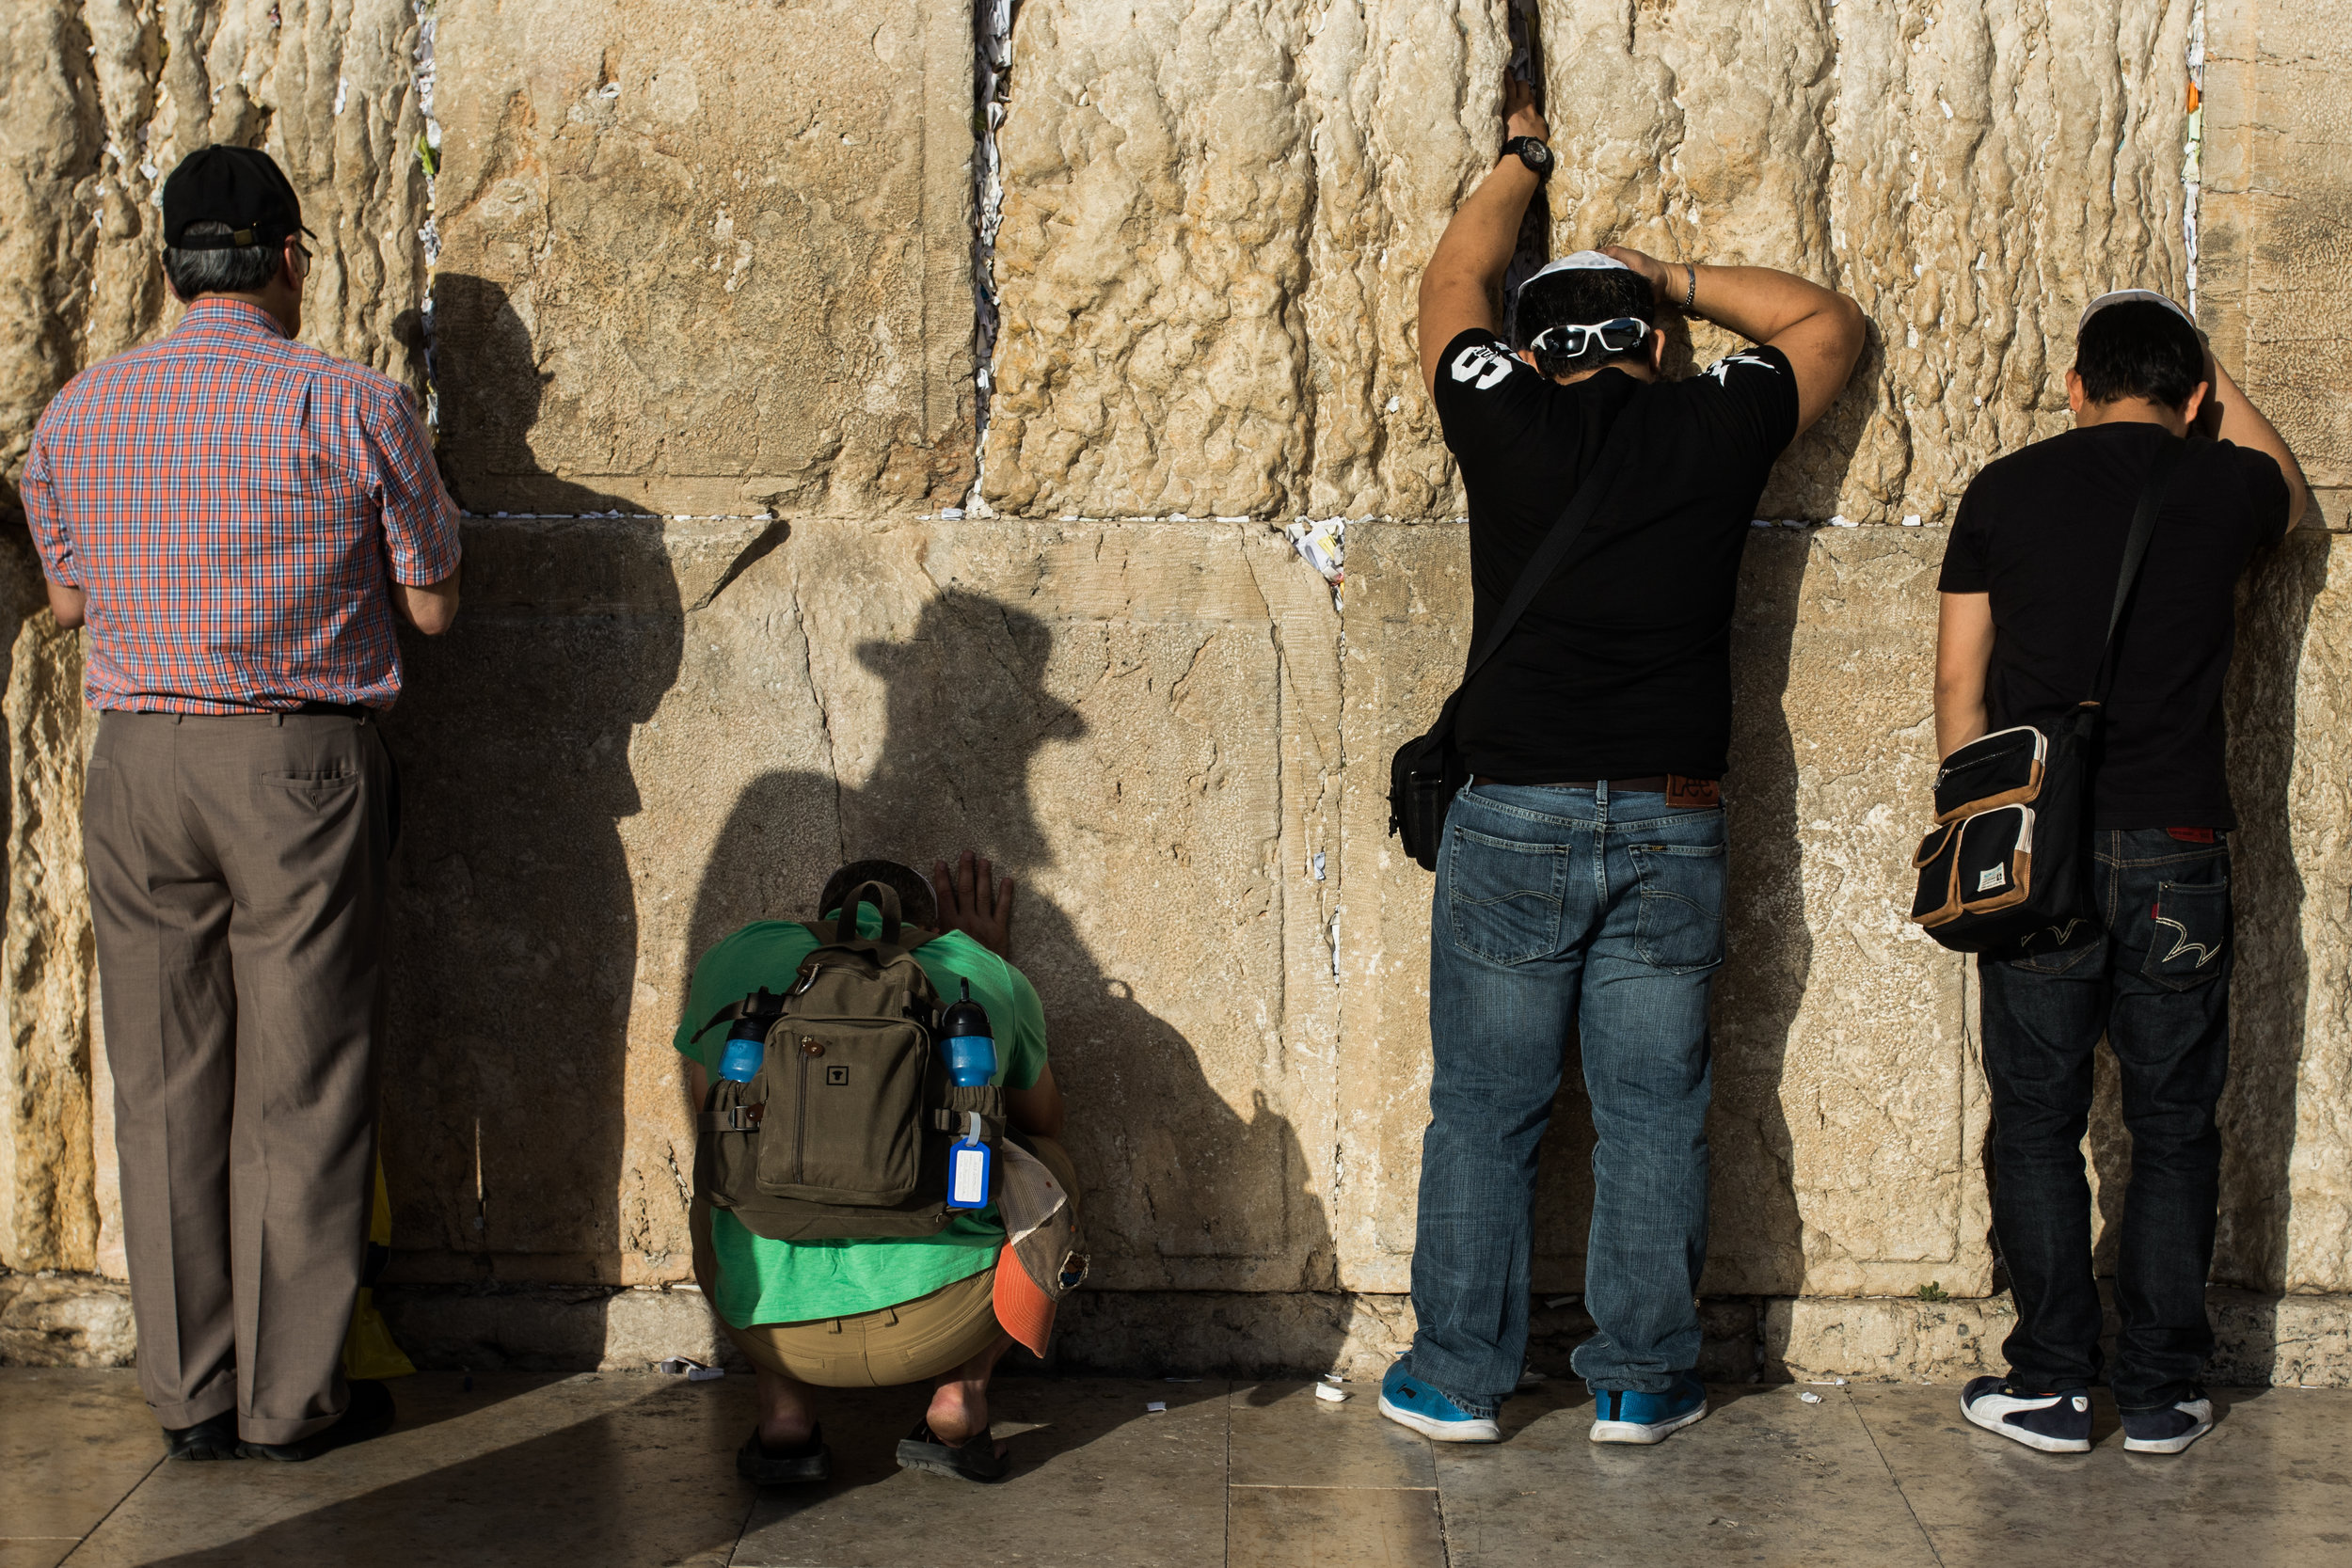 A group of men pray at the Western Wall, the most sacred monument where people are allowed to pray at in the Jewish religion, in the Old City of Jerusalem in the evening, June 7, 2016.